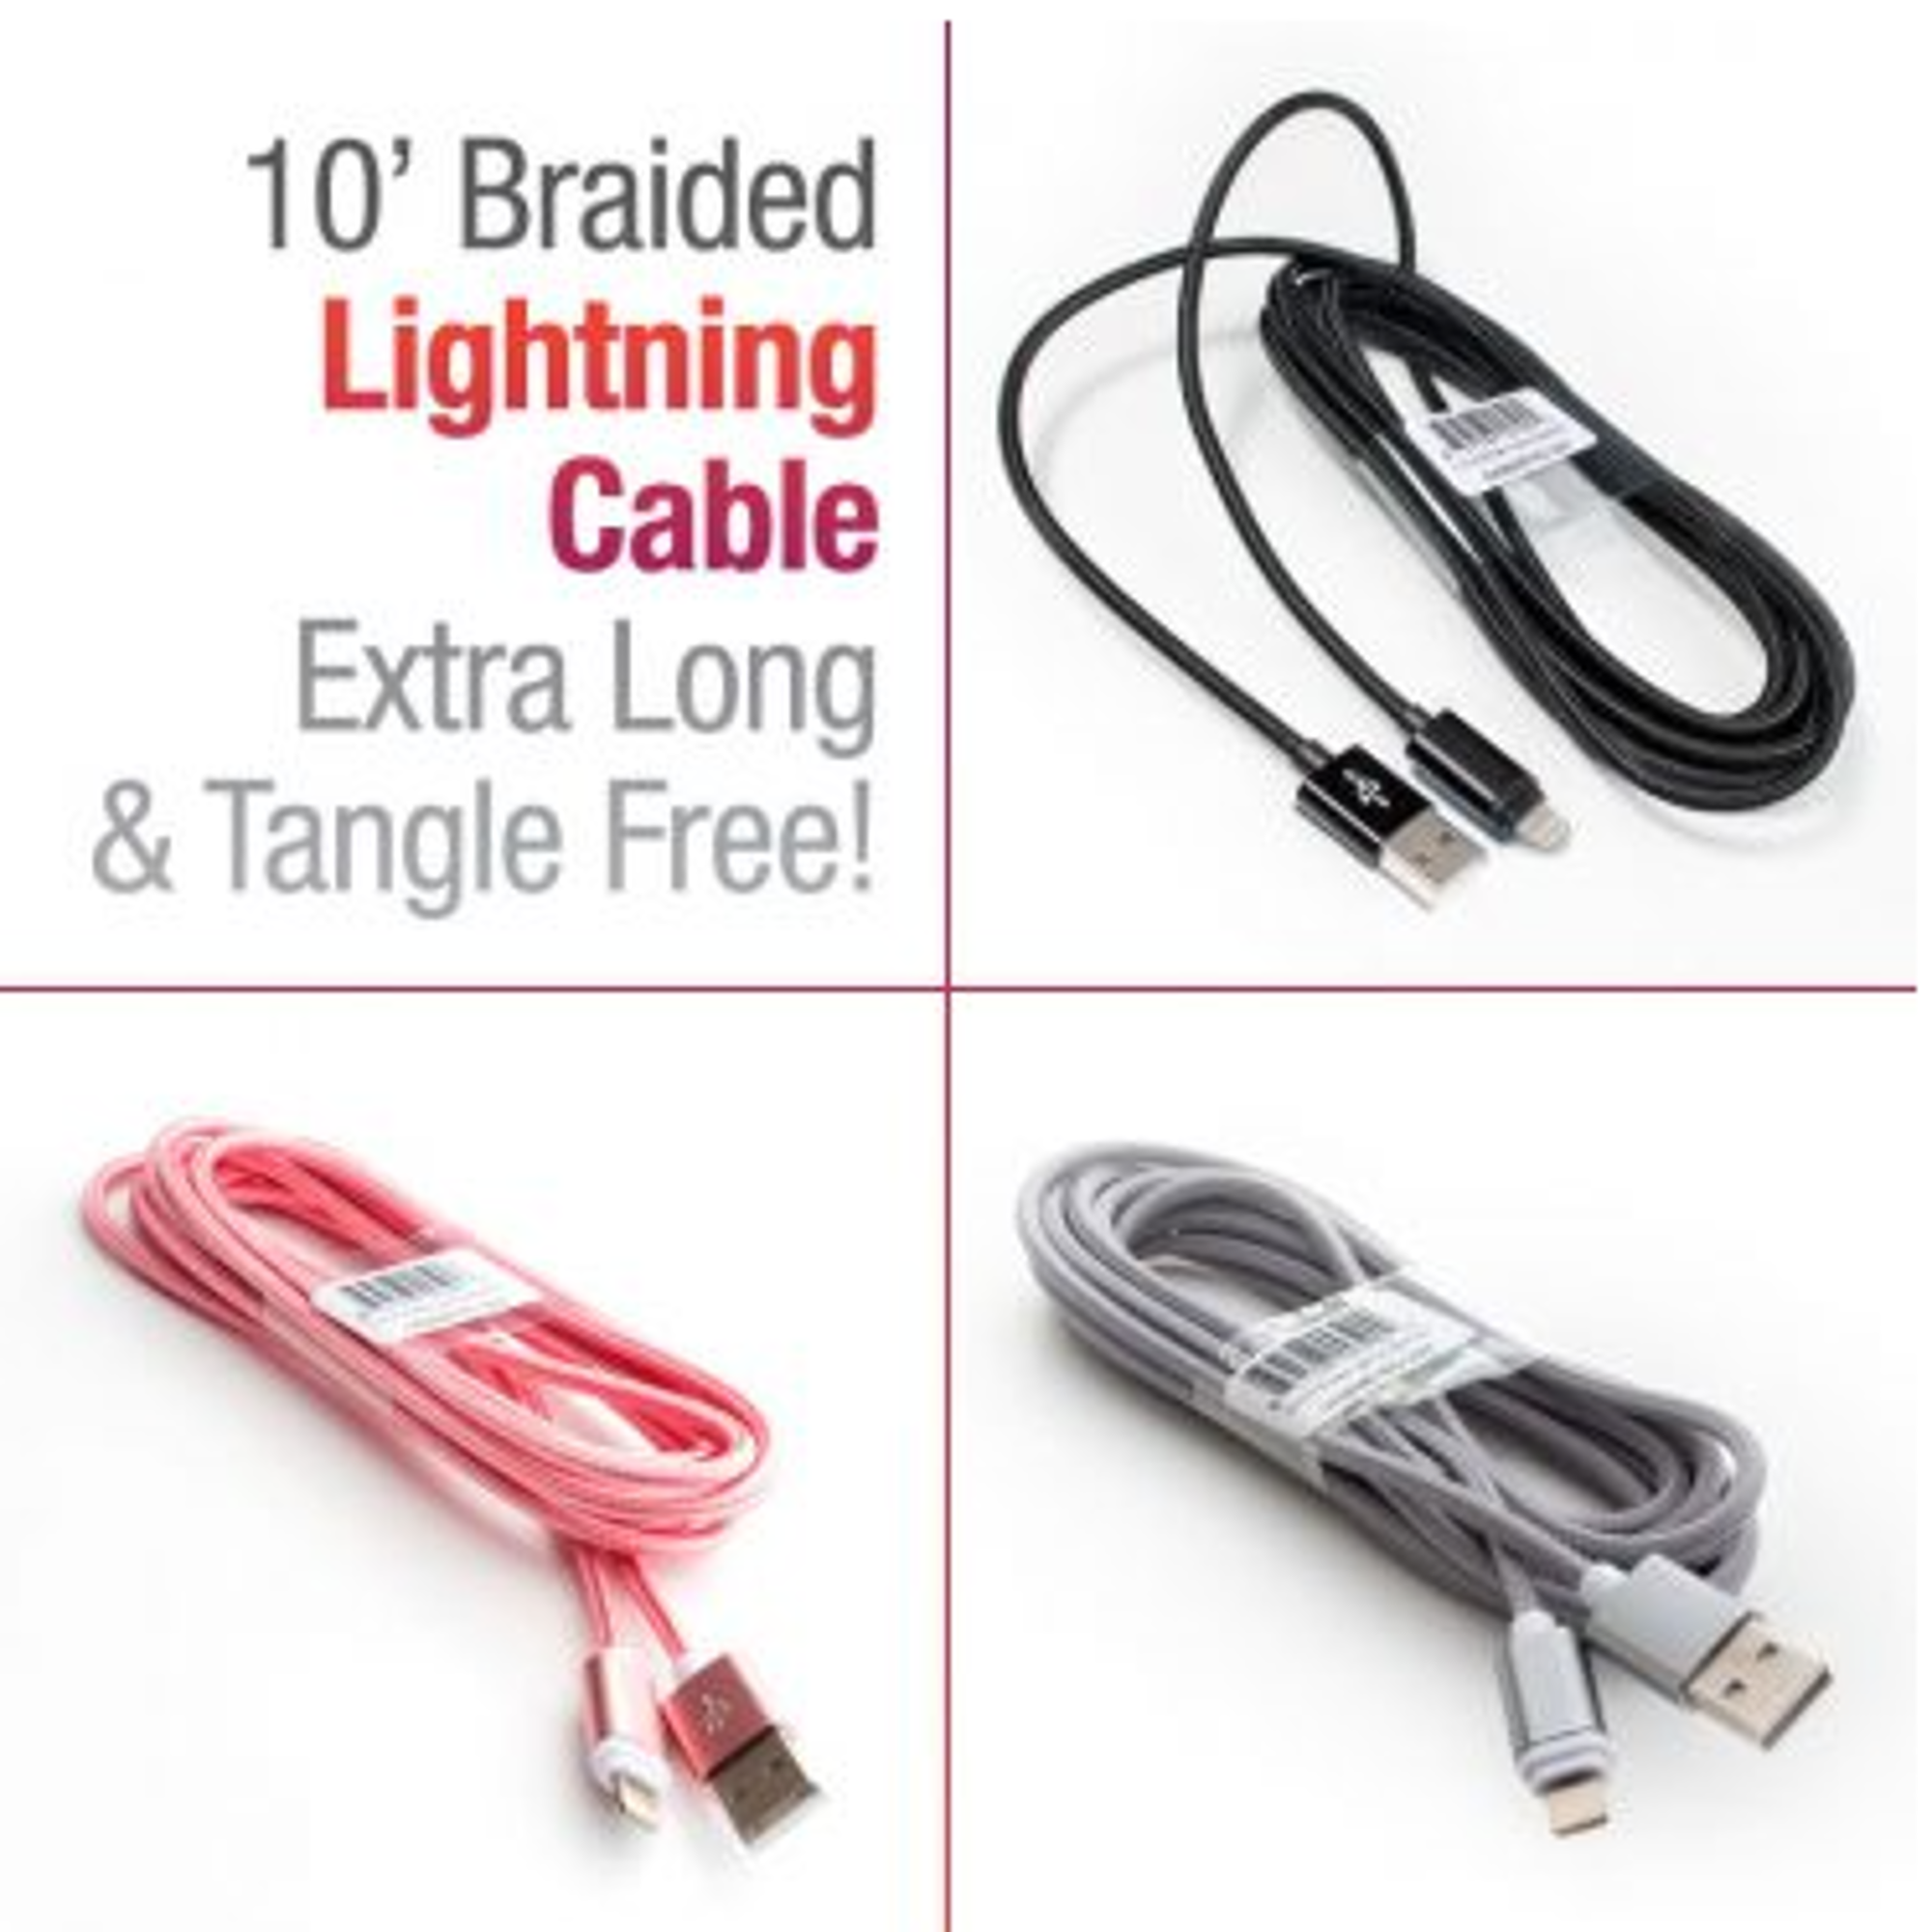 image of: 10' Braided Lightning Compatible Cable